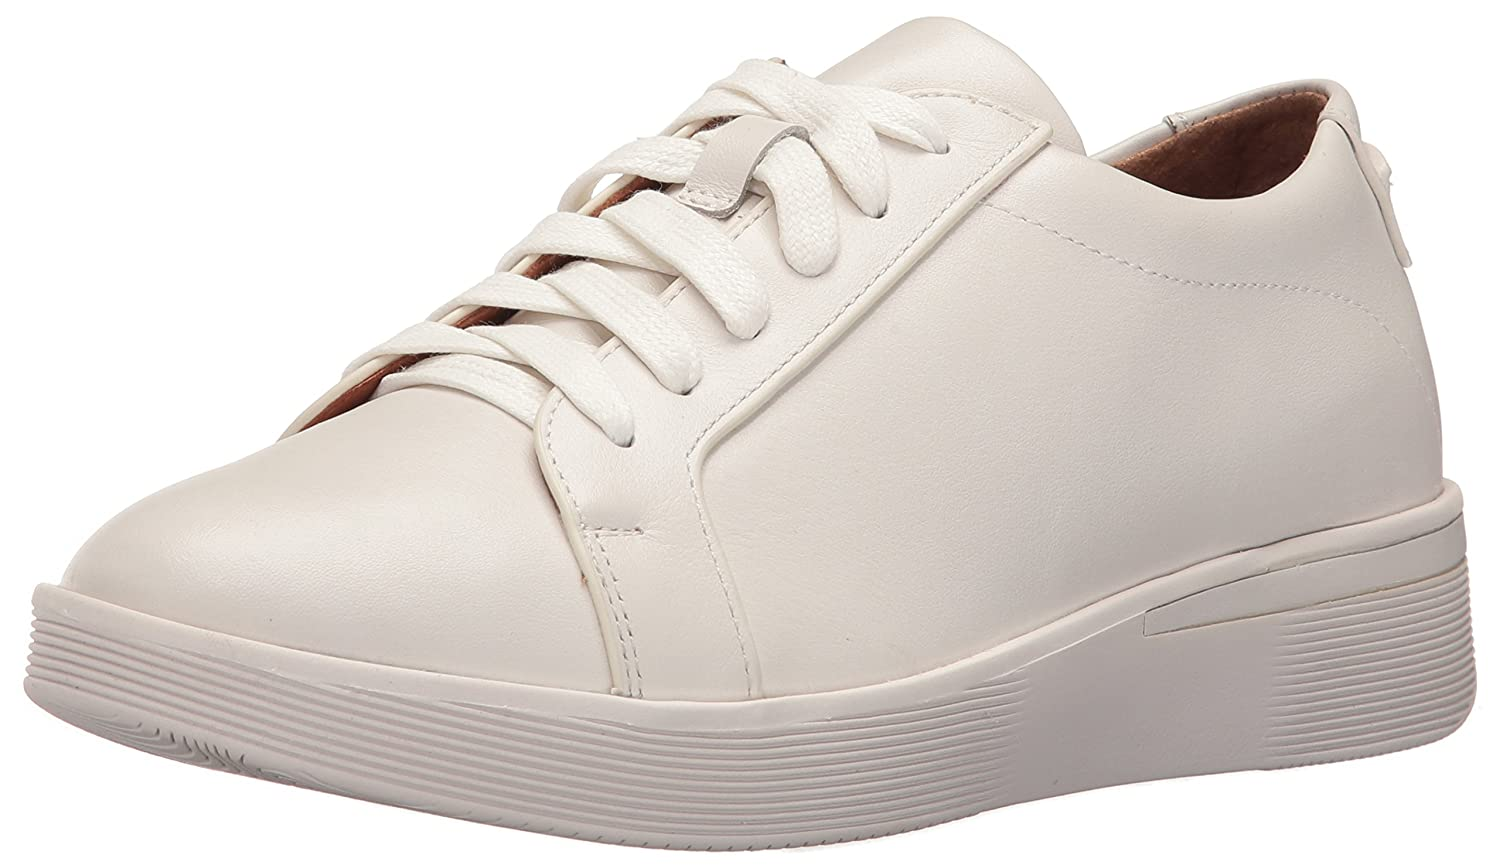 Gentle Souls by Kenneth Cole Women's Haddie Low Profile Fashion Sneaker Embossed Fashion Sneaker B01LYFKRKR 9.5 M US|White